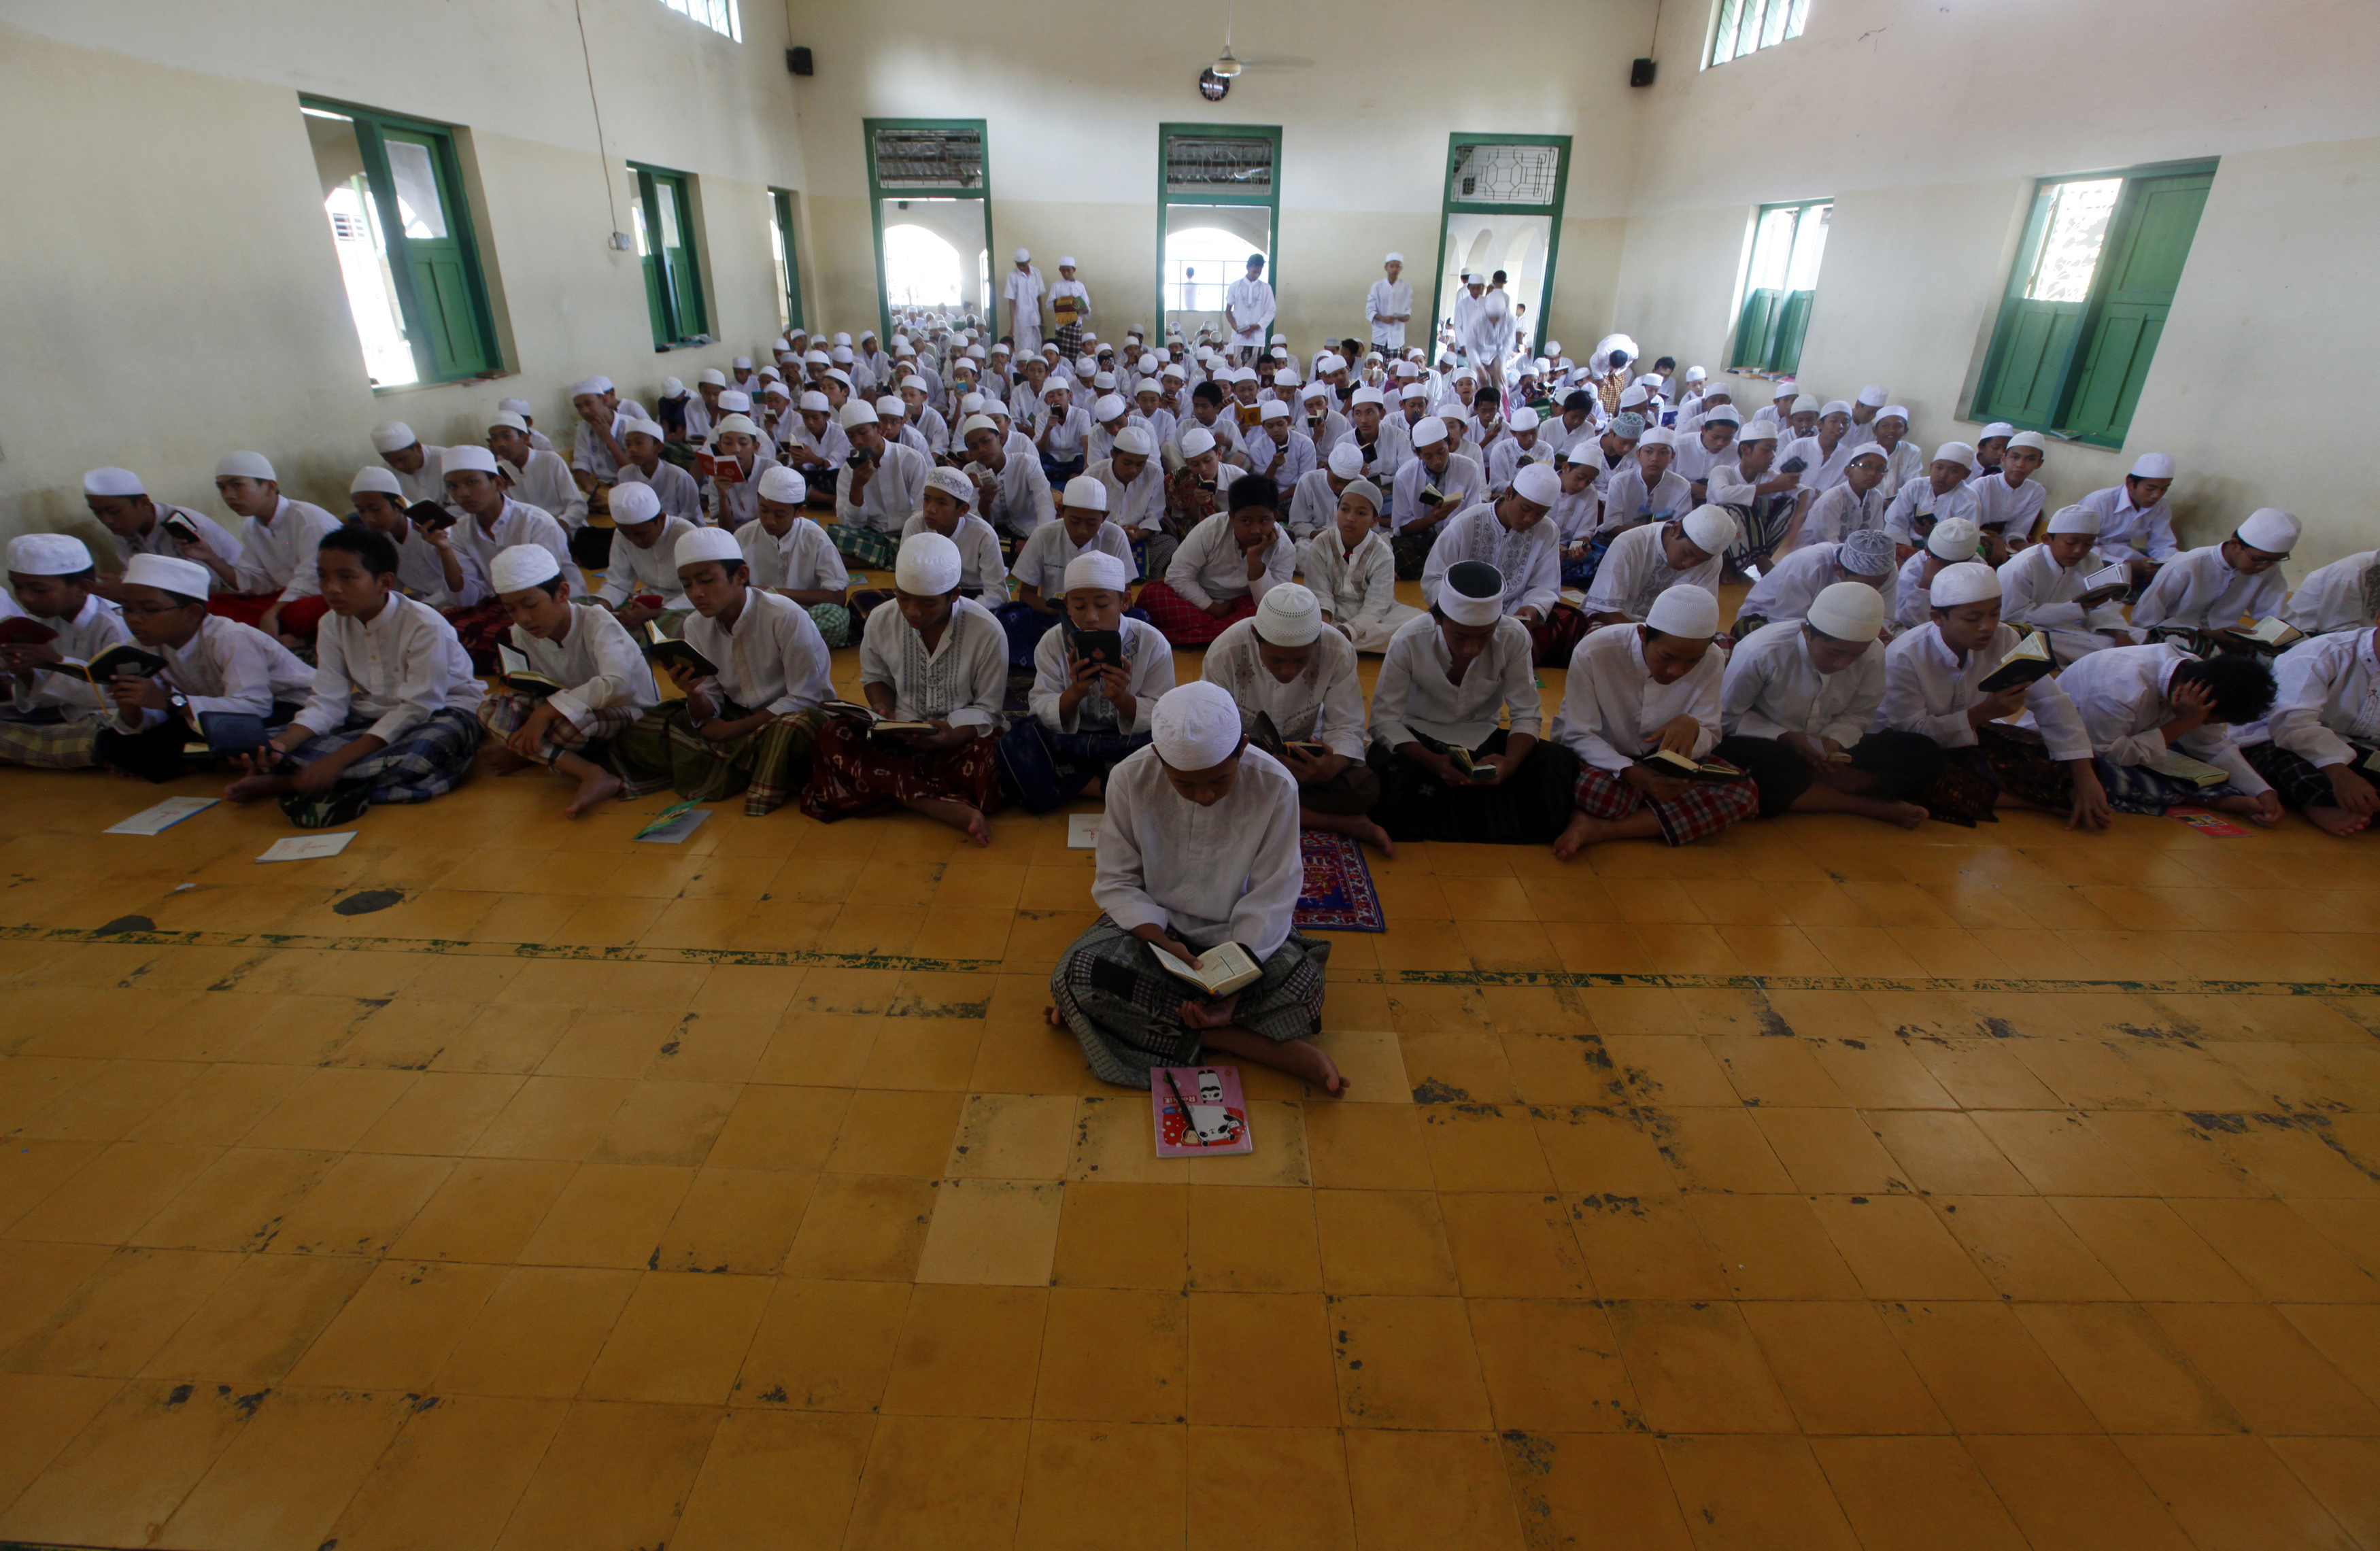 FILE - Students pray during the first day of the holy month of Ramadan at Al-Mukmin Islamic boarding school in Solo, in Indonesia's Central Java province, August 1, 2011.